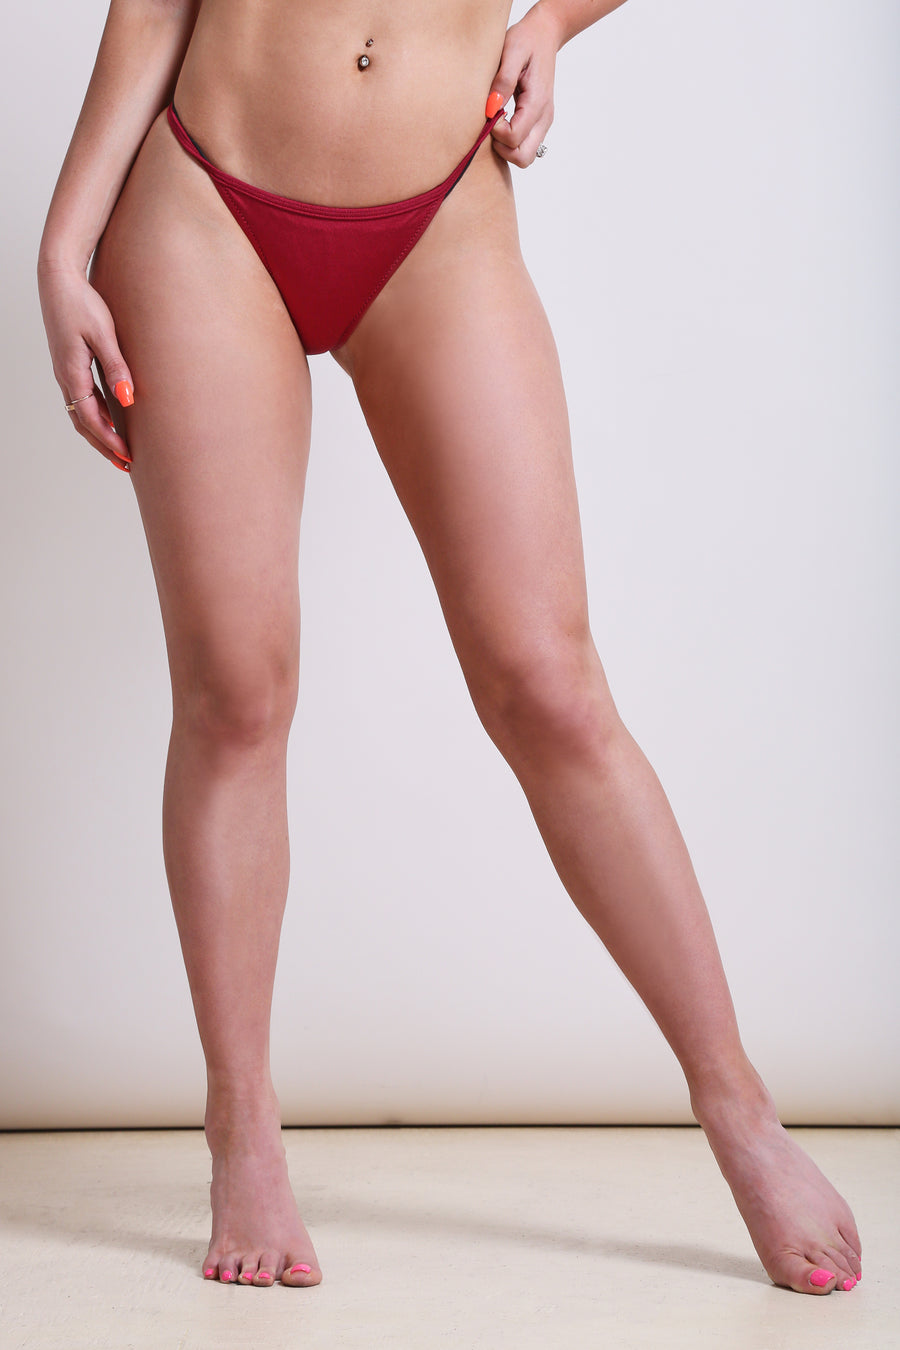 Cancun Bikini Bottoms - Burgundy - NEM Fashion Store